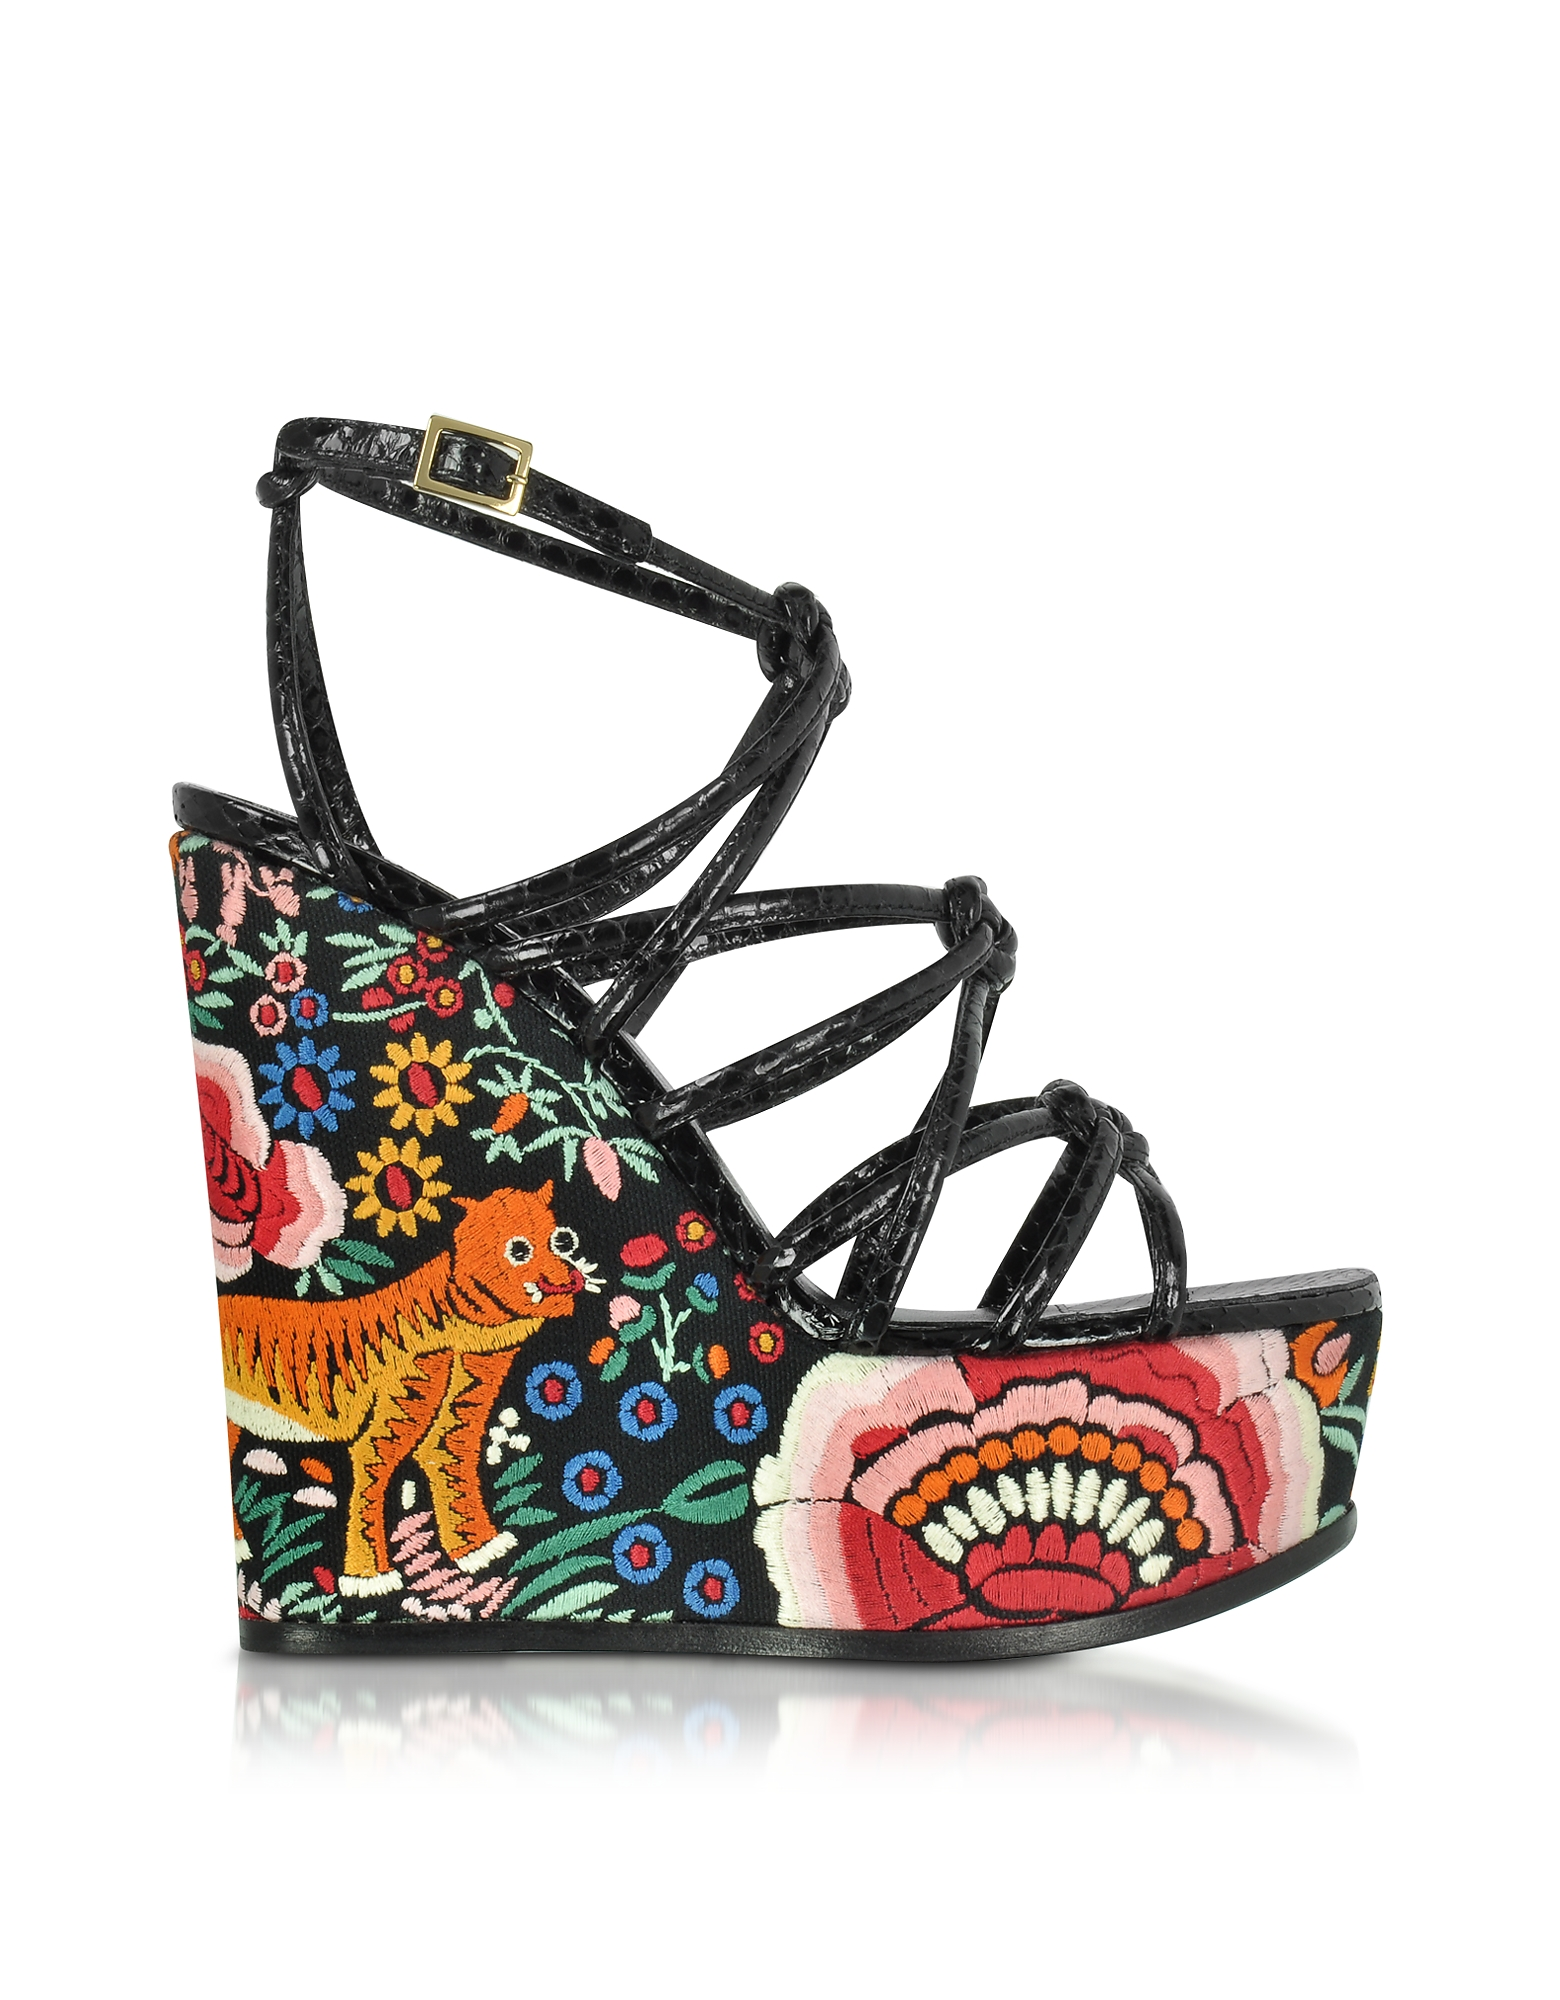 Roberto Cavalli Shoes, Floral Embroidered Black Leather Wedges